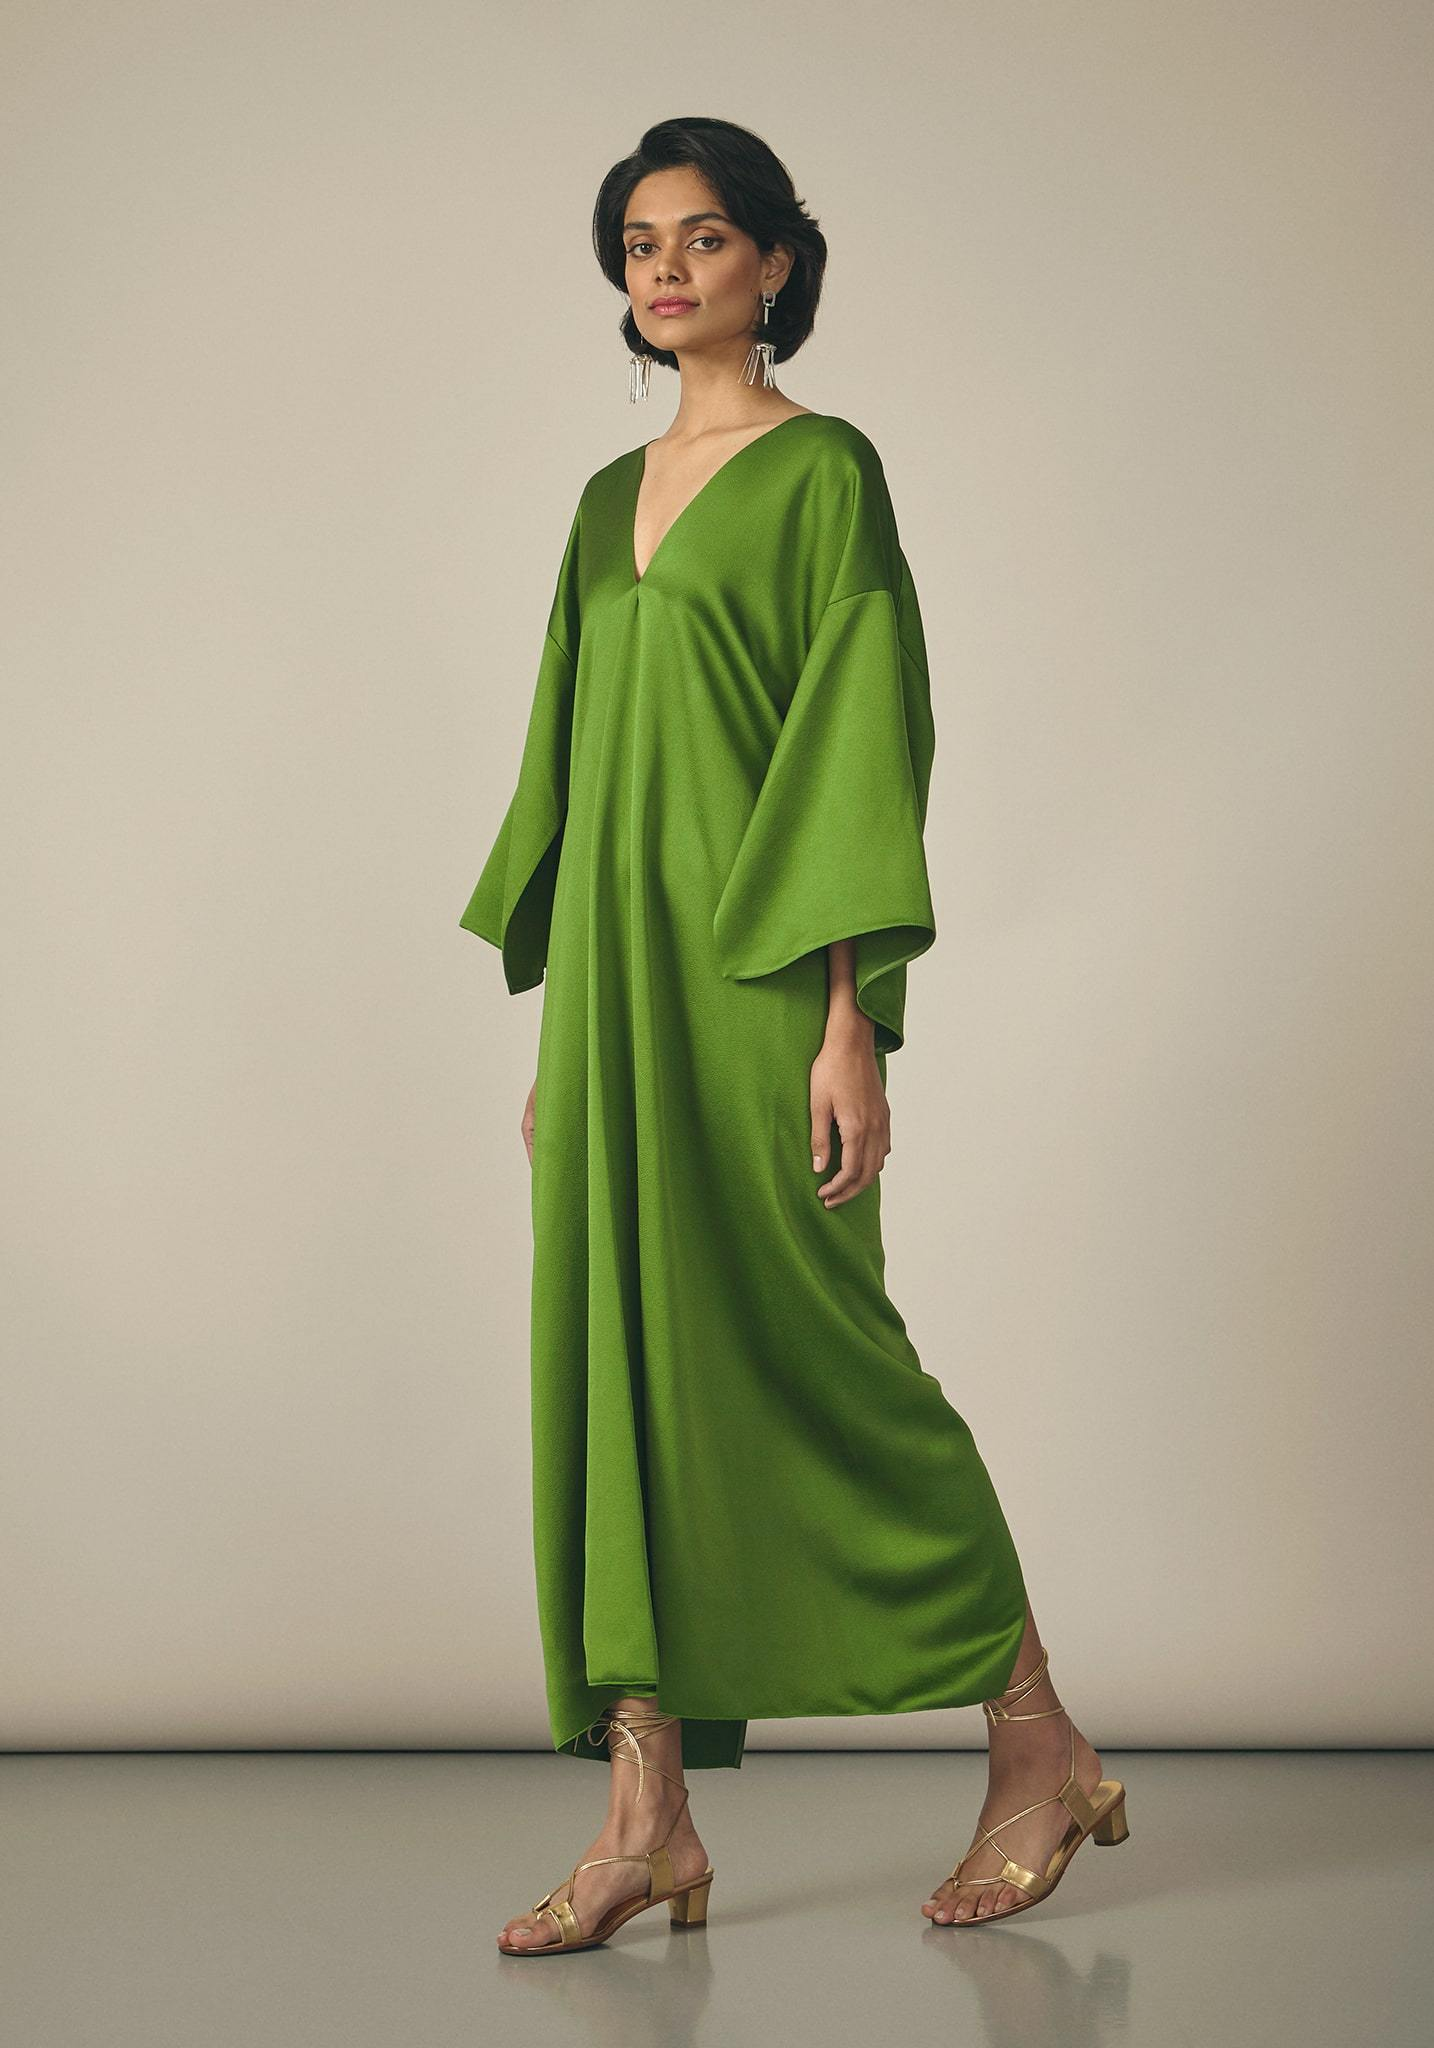 Maison Rabih Kayrouz, Satin Green Dress